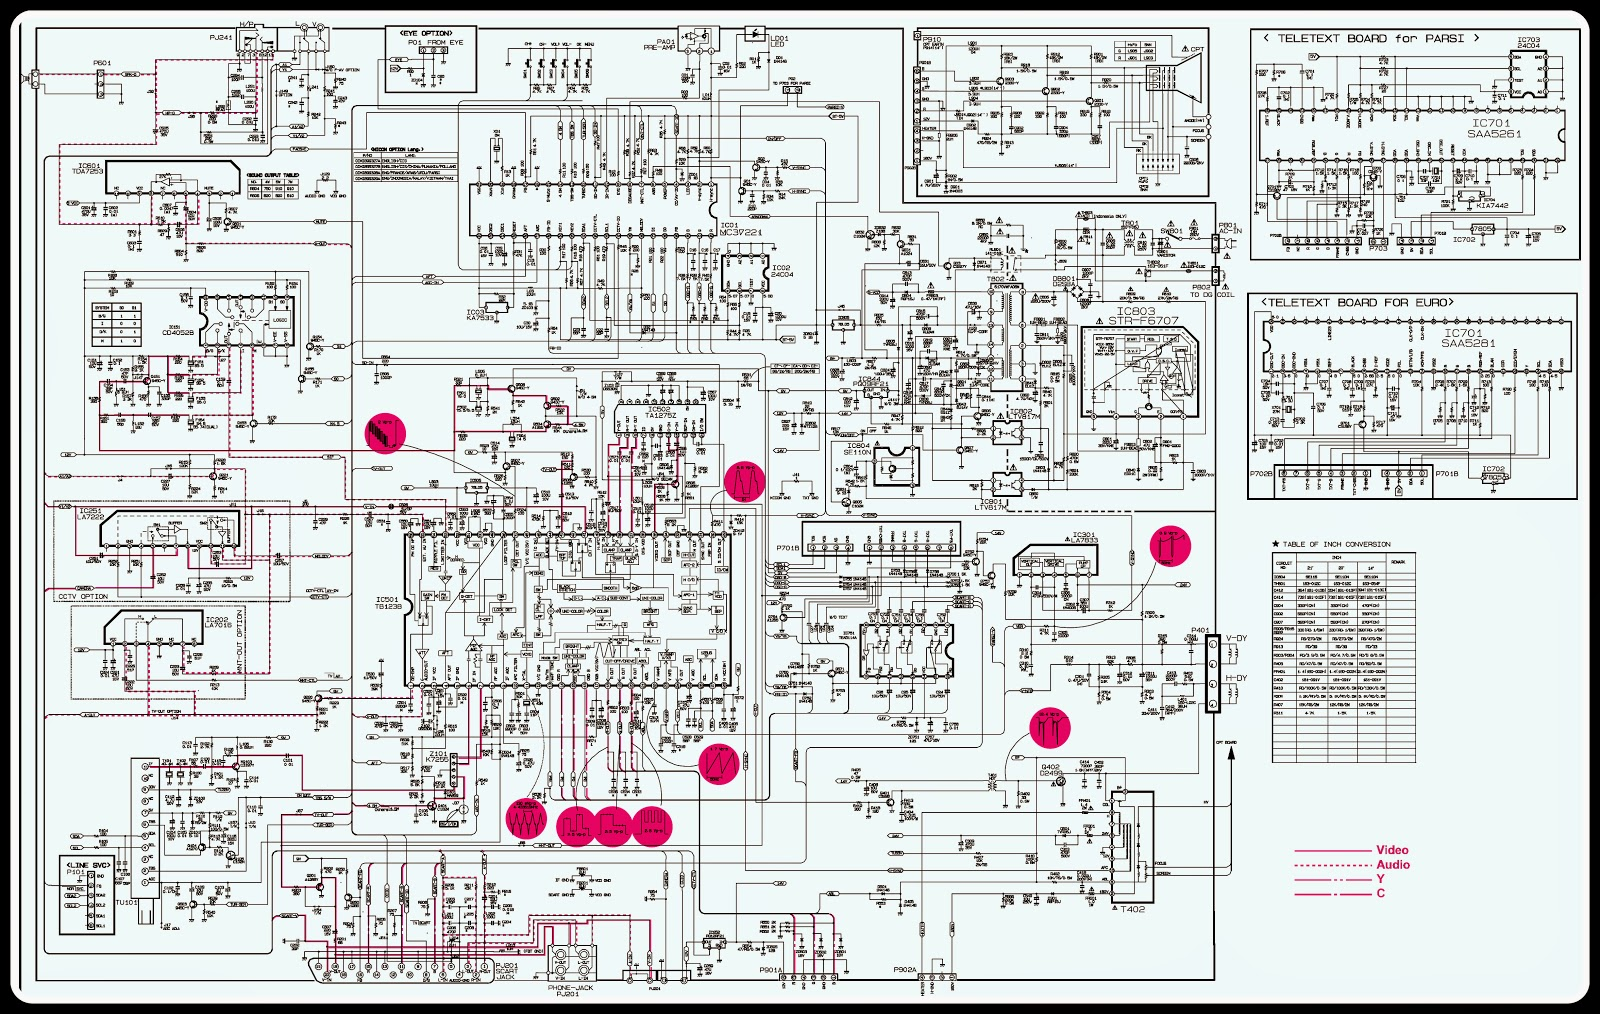 hight resolution of tv schematic diagrams free download wiring diagram post lg tv schematic diagrams wiring diagram post tv